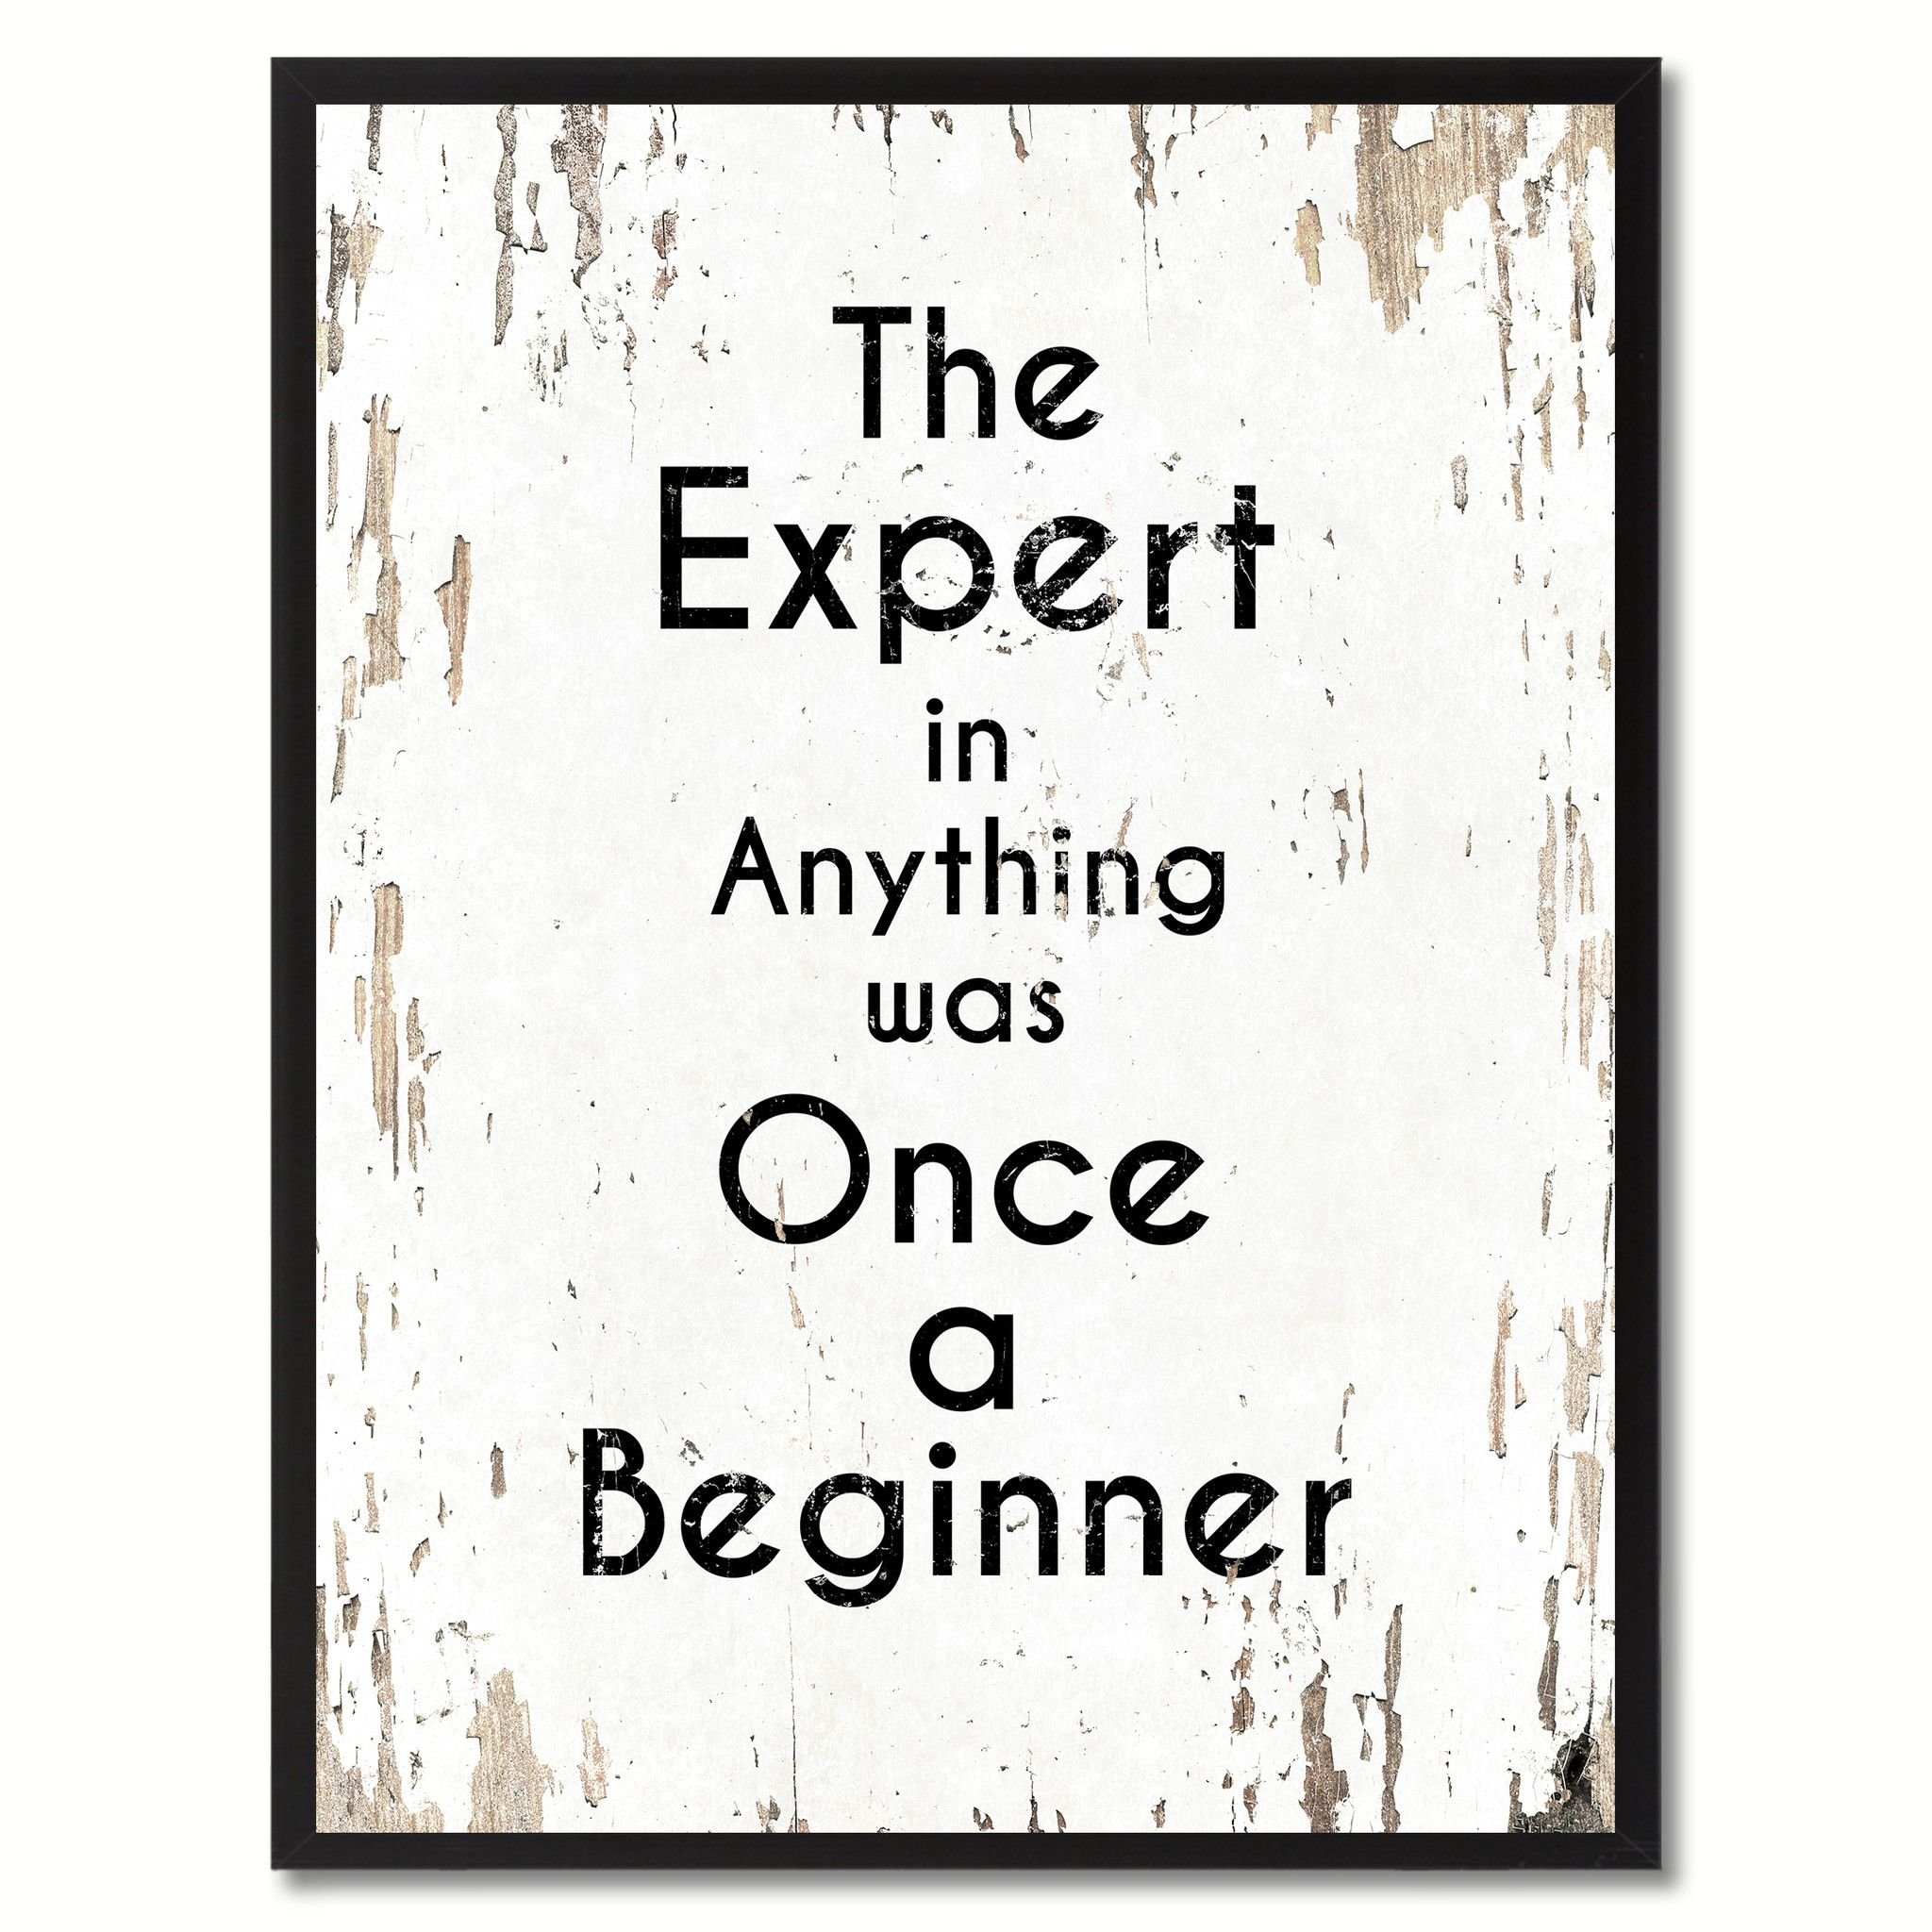 Gentil The Expert In Anything Was Once A Beginner Inspirational Quote Saying Gift  Ideas Home Décor Wall Art